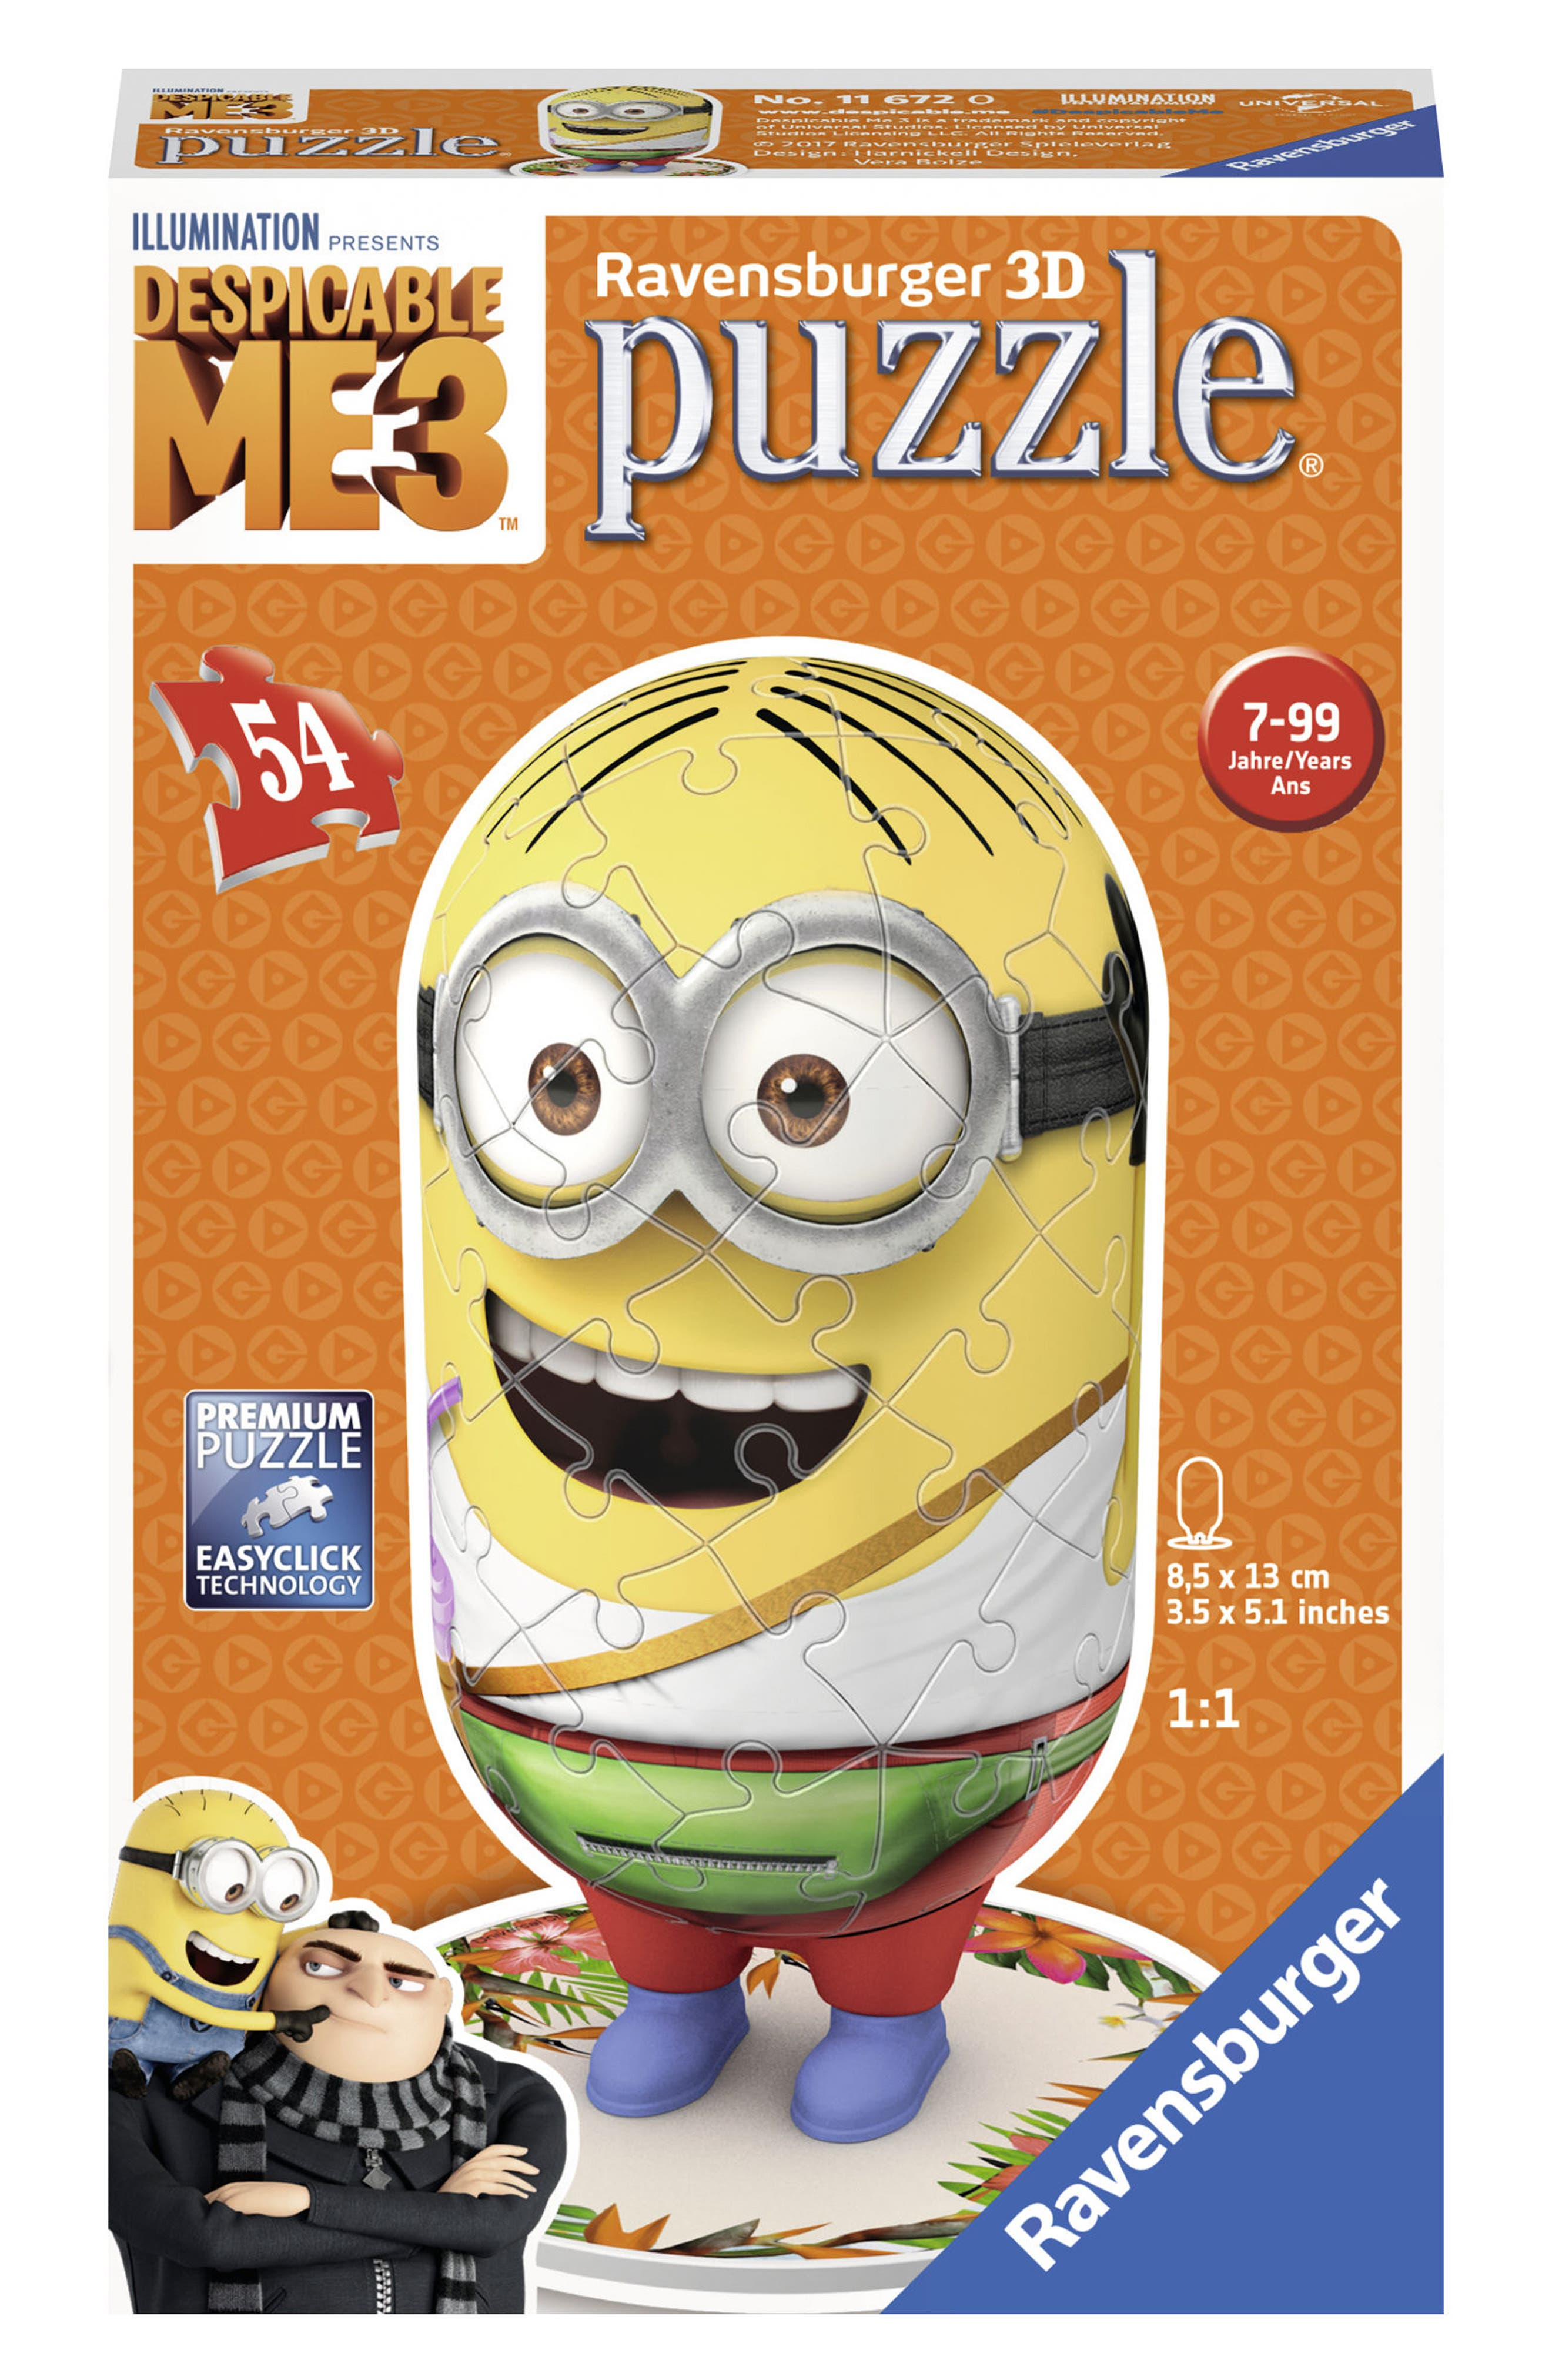 Alternate Image 1 Selected - Ravensburger 54-Piece Despicable Me 3 Minion 3D Puzzle